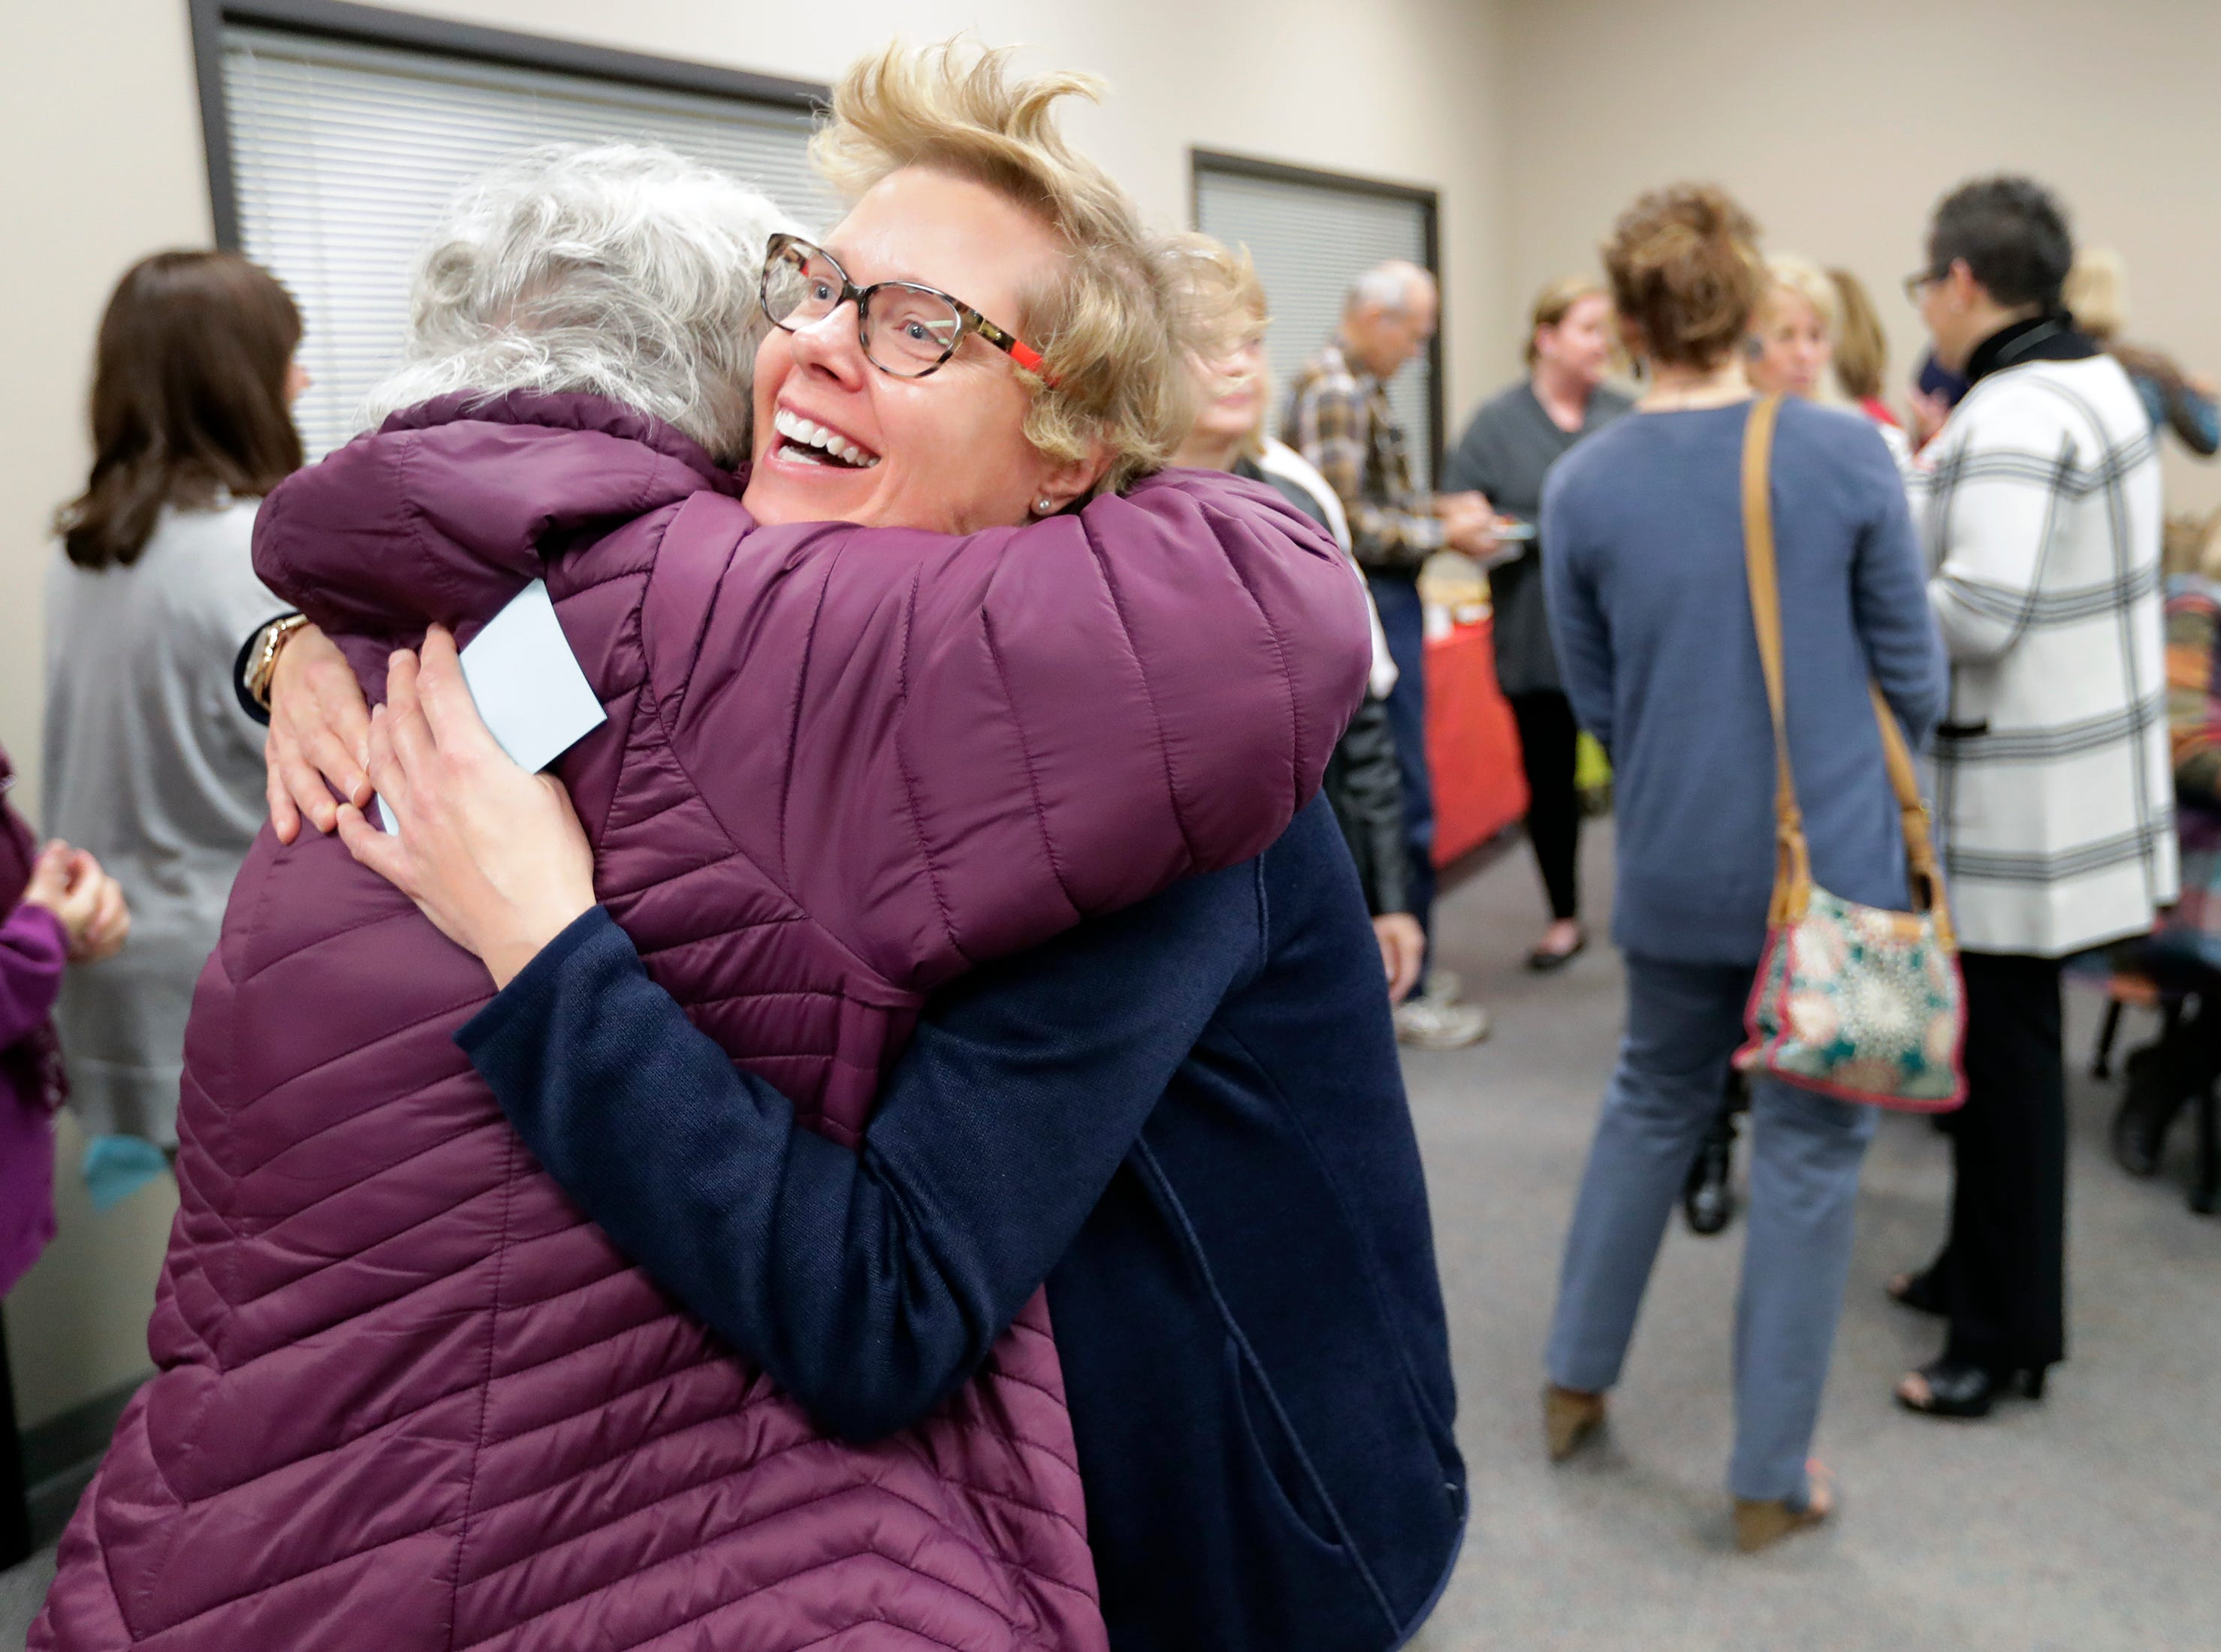 Executive Director Jill H. Grambow, right, gets a hug from her friend and former co-worker Sue Borree during the Fox Valley Memory Project new headquarters open house event Wednesday, Oct. 17, 2018, at Goodwill North Central Wisconsin in Menasha, Wis. 